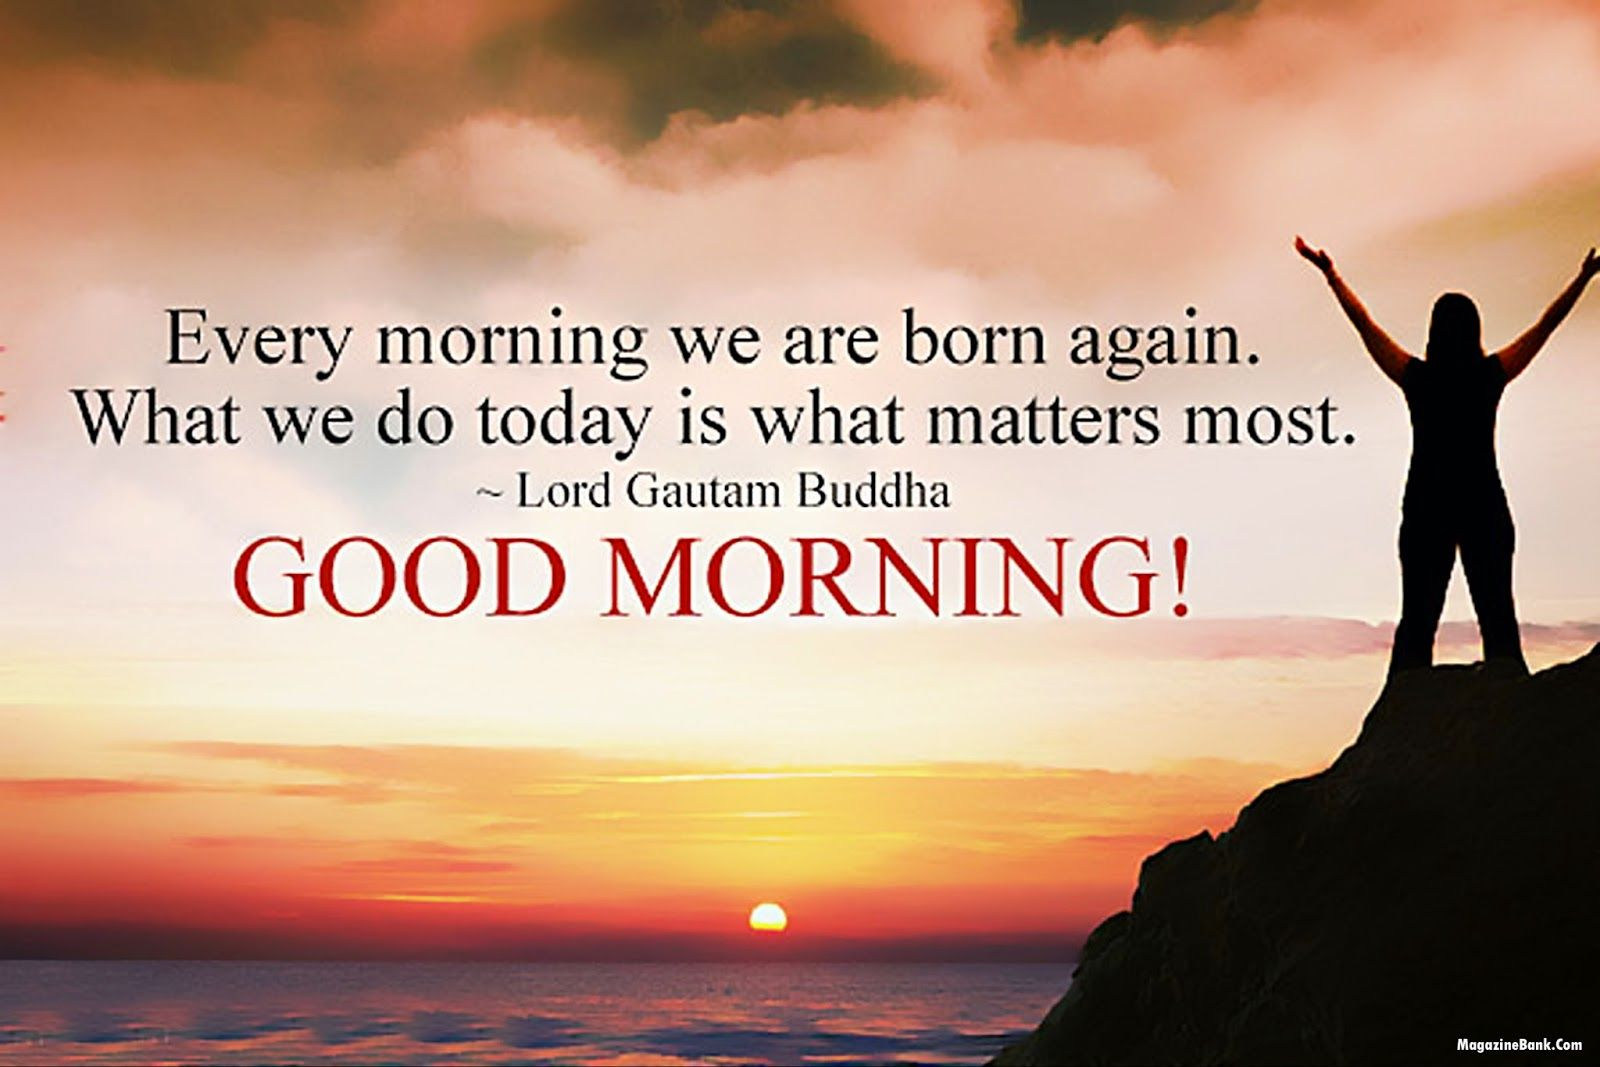 Good morning sms messages have a nice day in english sms wishes good morning sms messages have a nice day in english sms wishes poetry kristyandbryce Choice Image